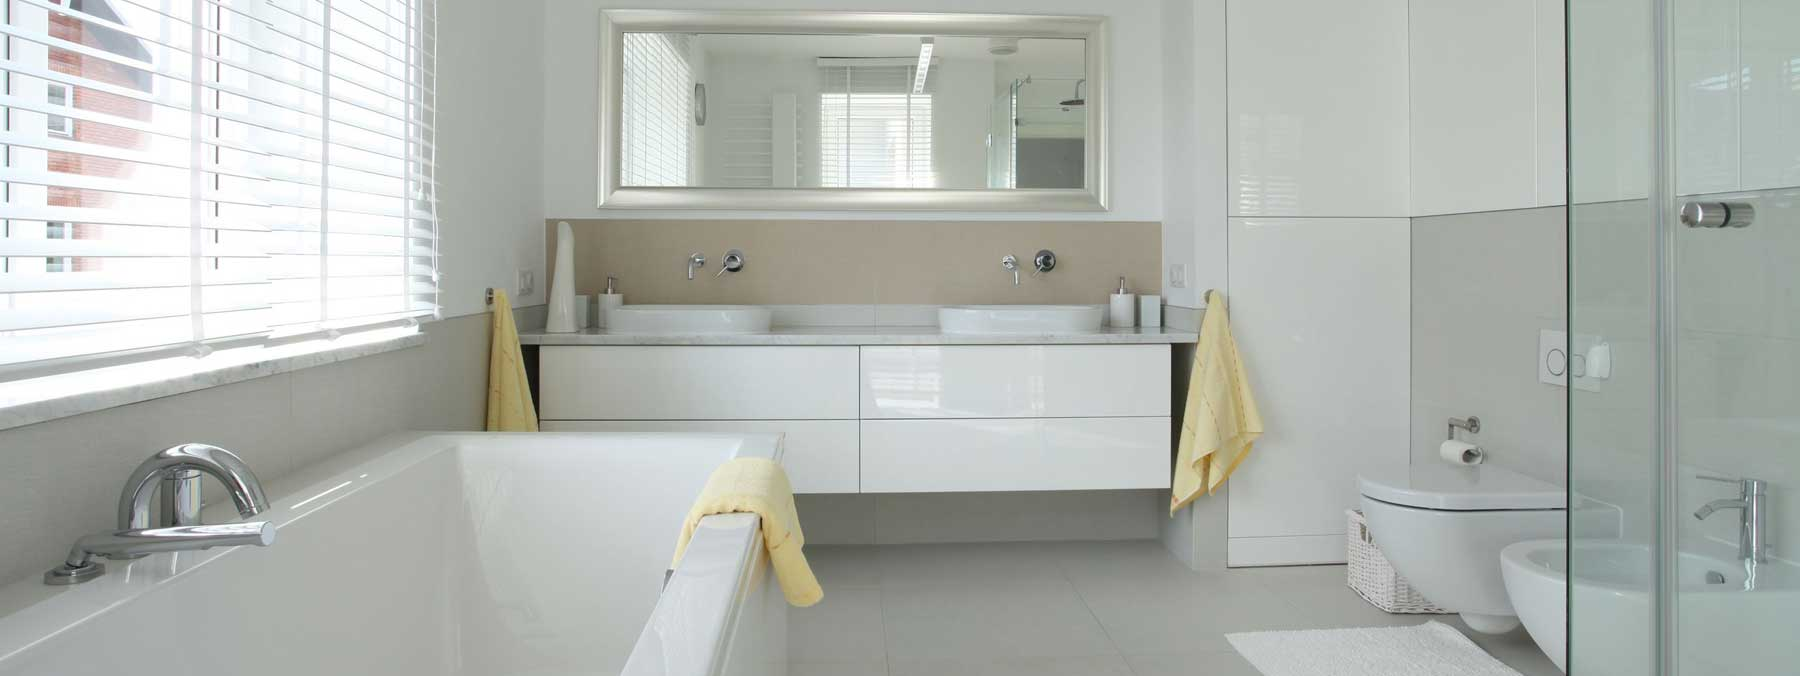 Stunning Castle Hill Bathroom Renovations. Complete Bathroom Renovations Sydney